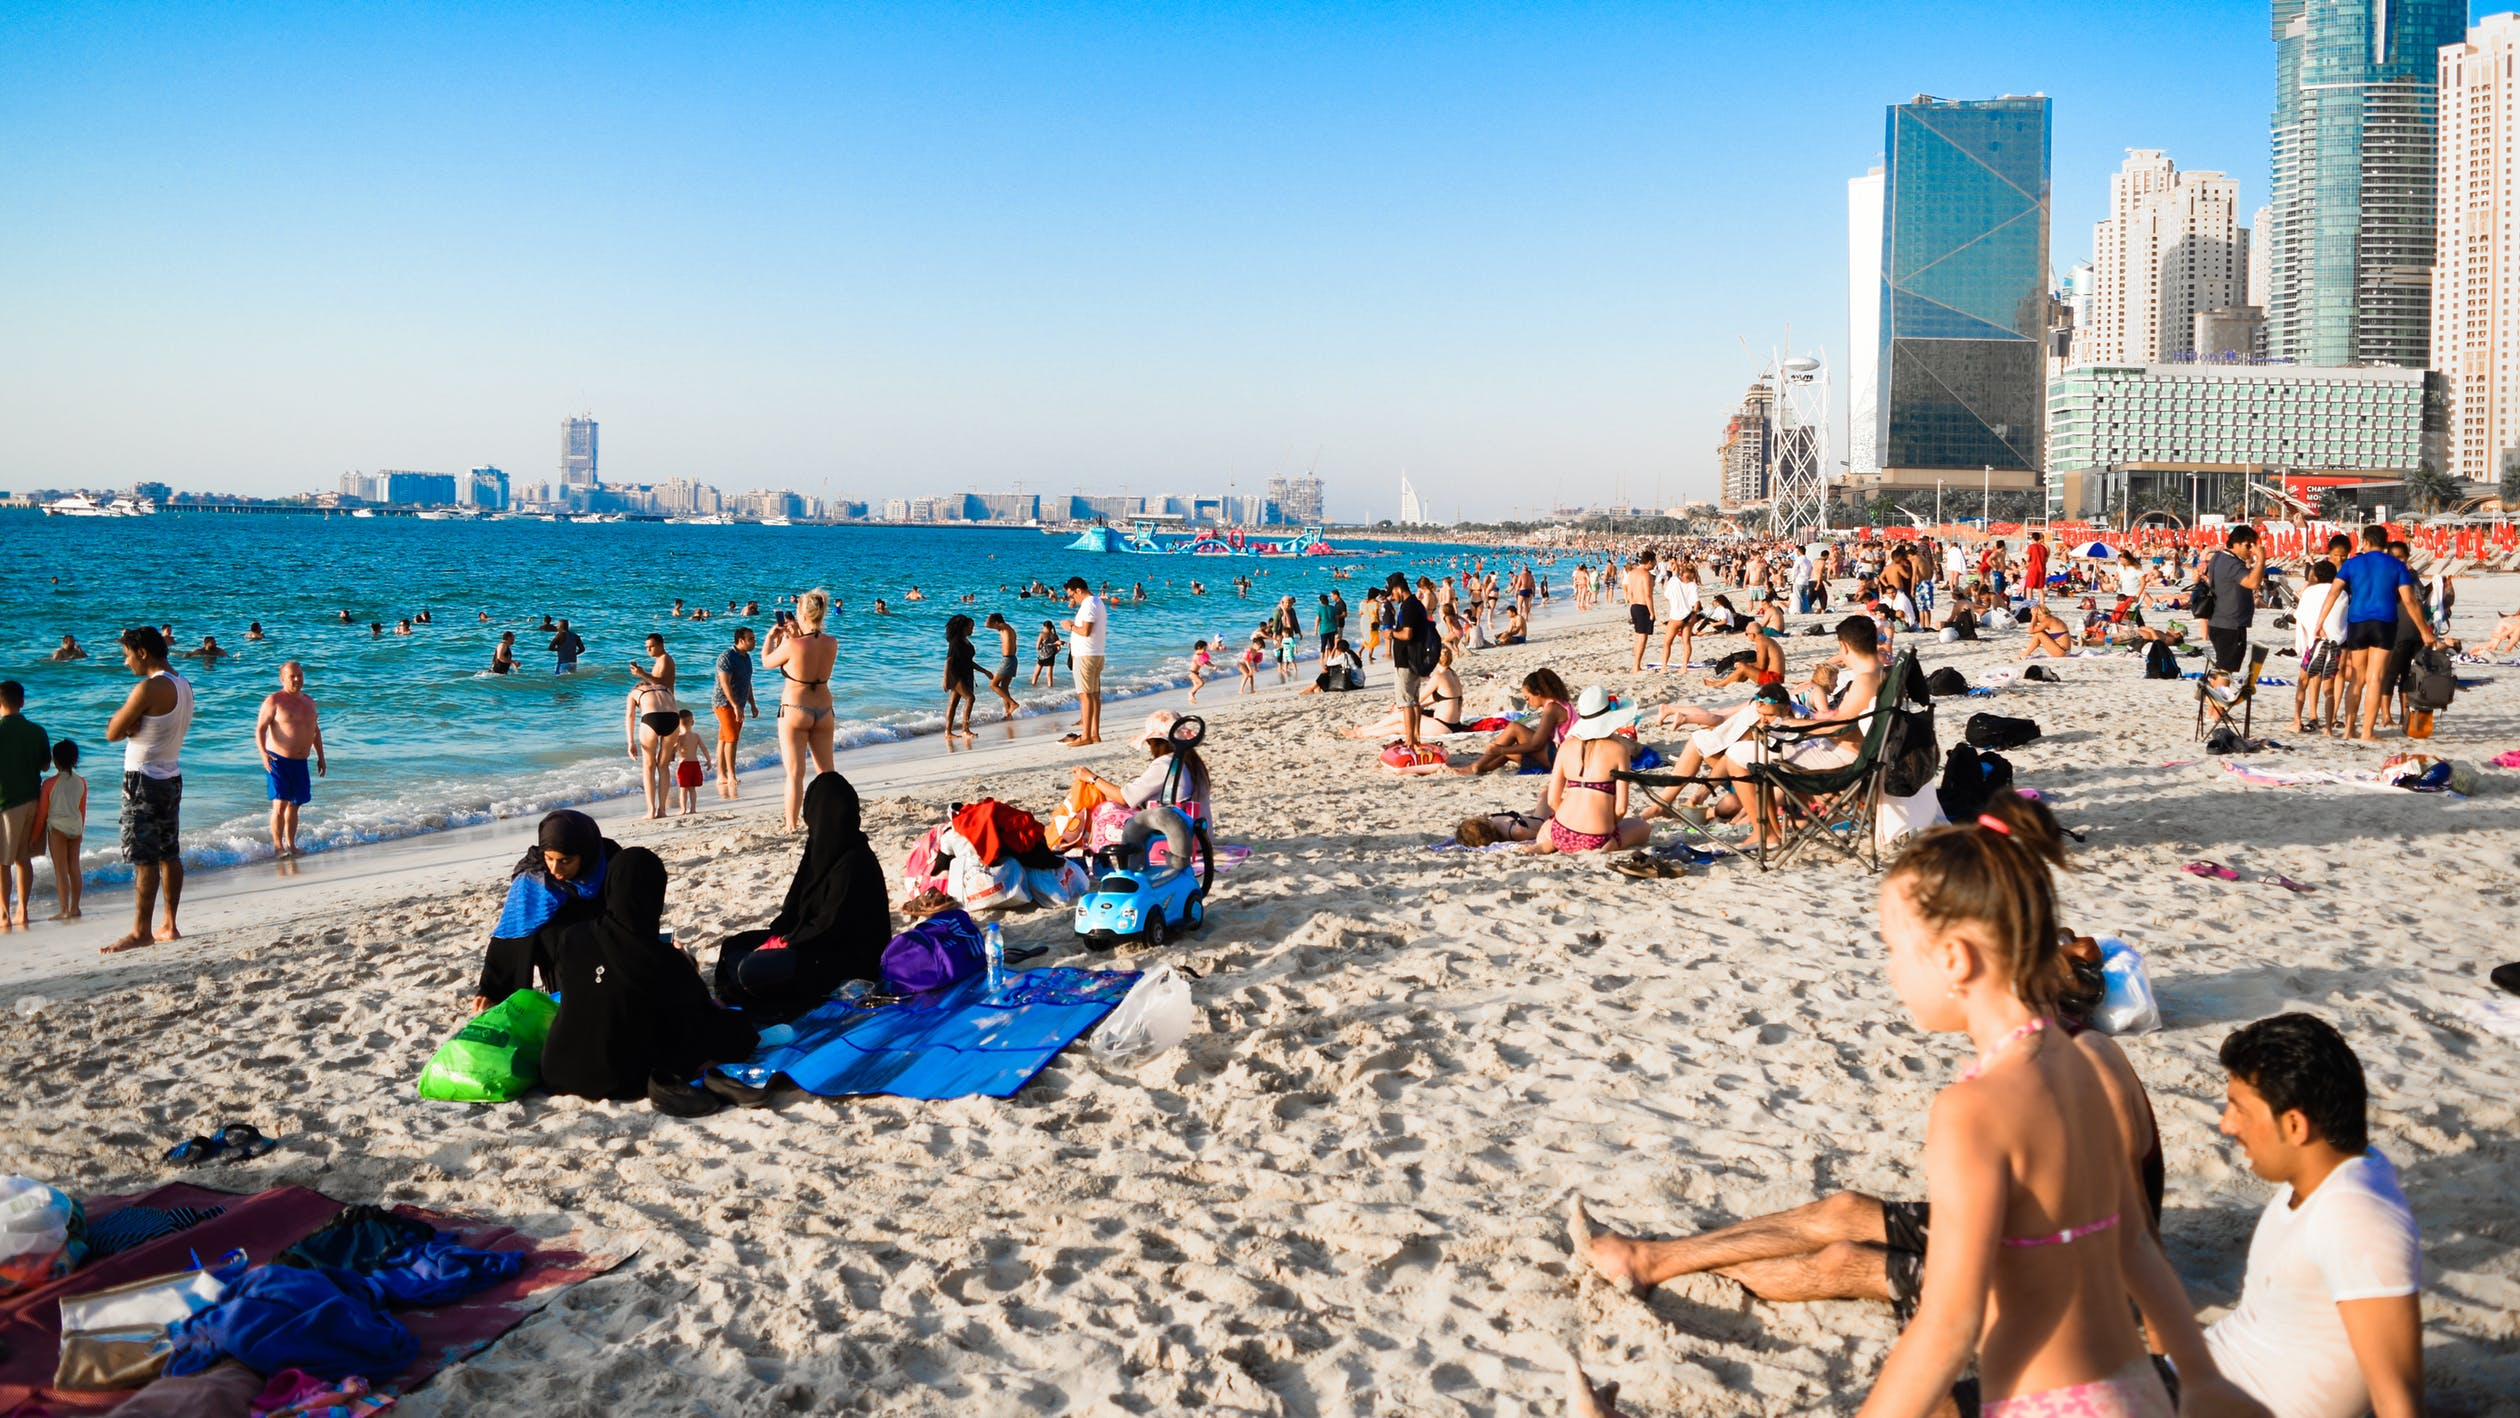 The Palm Jumeirah Review: A Serene Life in A Vivid City